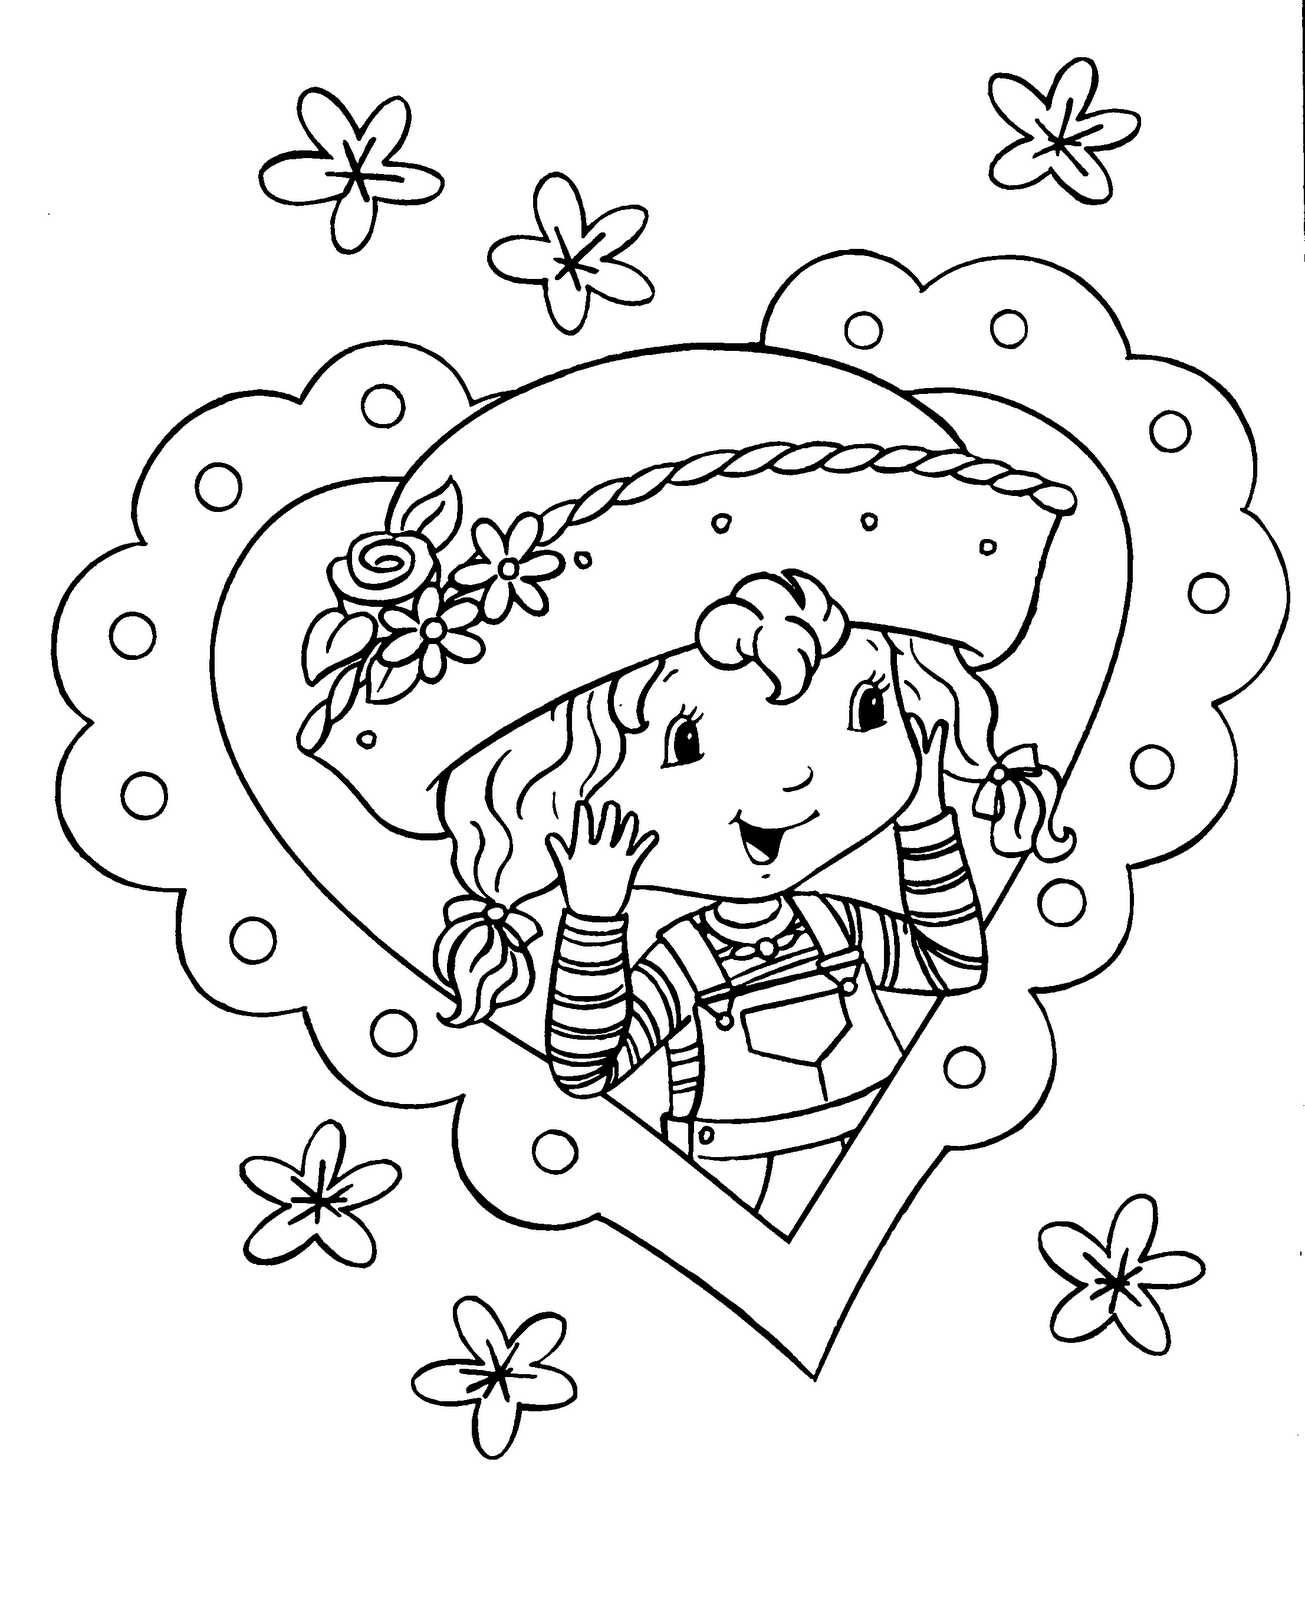 strawberry shortcake coloring page strawberry shortcake coloring pages fantasy coloring pages page coloring strawberry shortcake